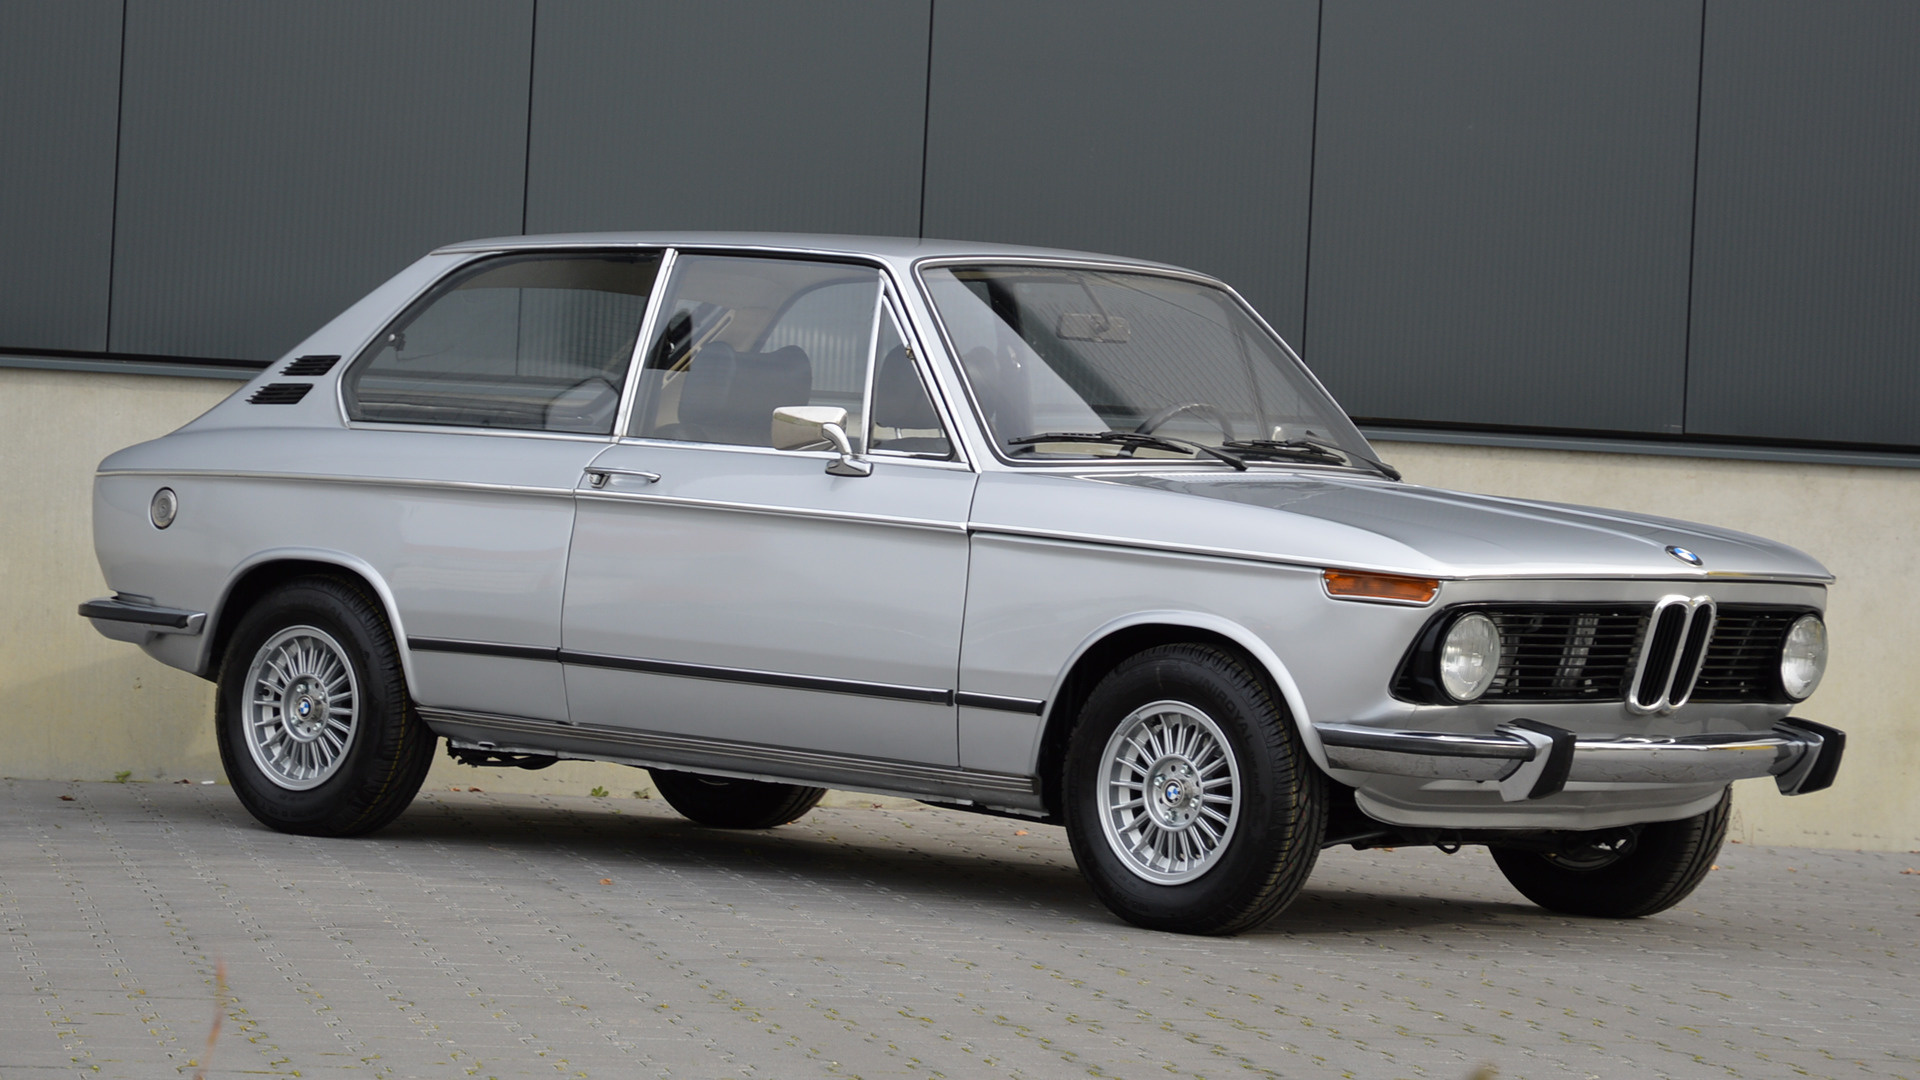 1973 bmw 2002 tii touring wallpapers and hd images car. Black Bedroom Furniture Sets. Home Design Ideas